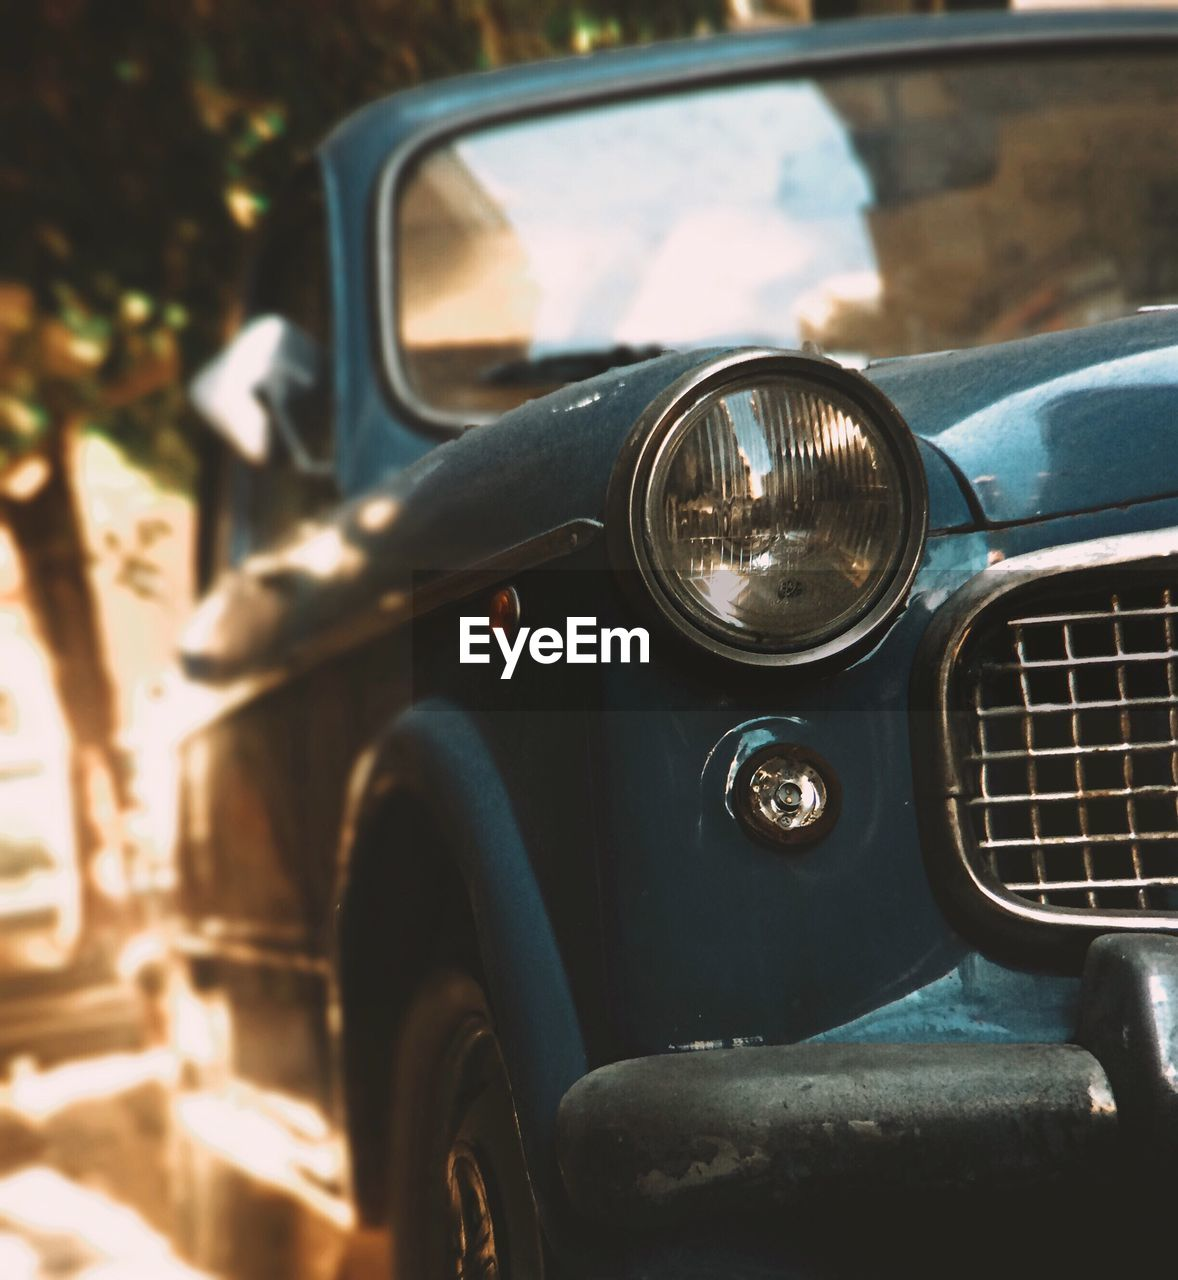 mode of transport, car, land vehicle, transportation, headlight, old-fashioned, day, no people, close-up, outdoors